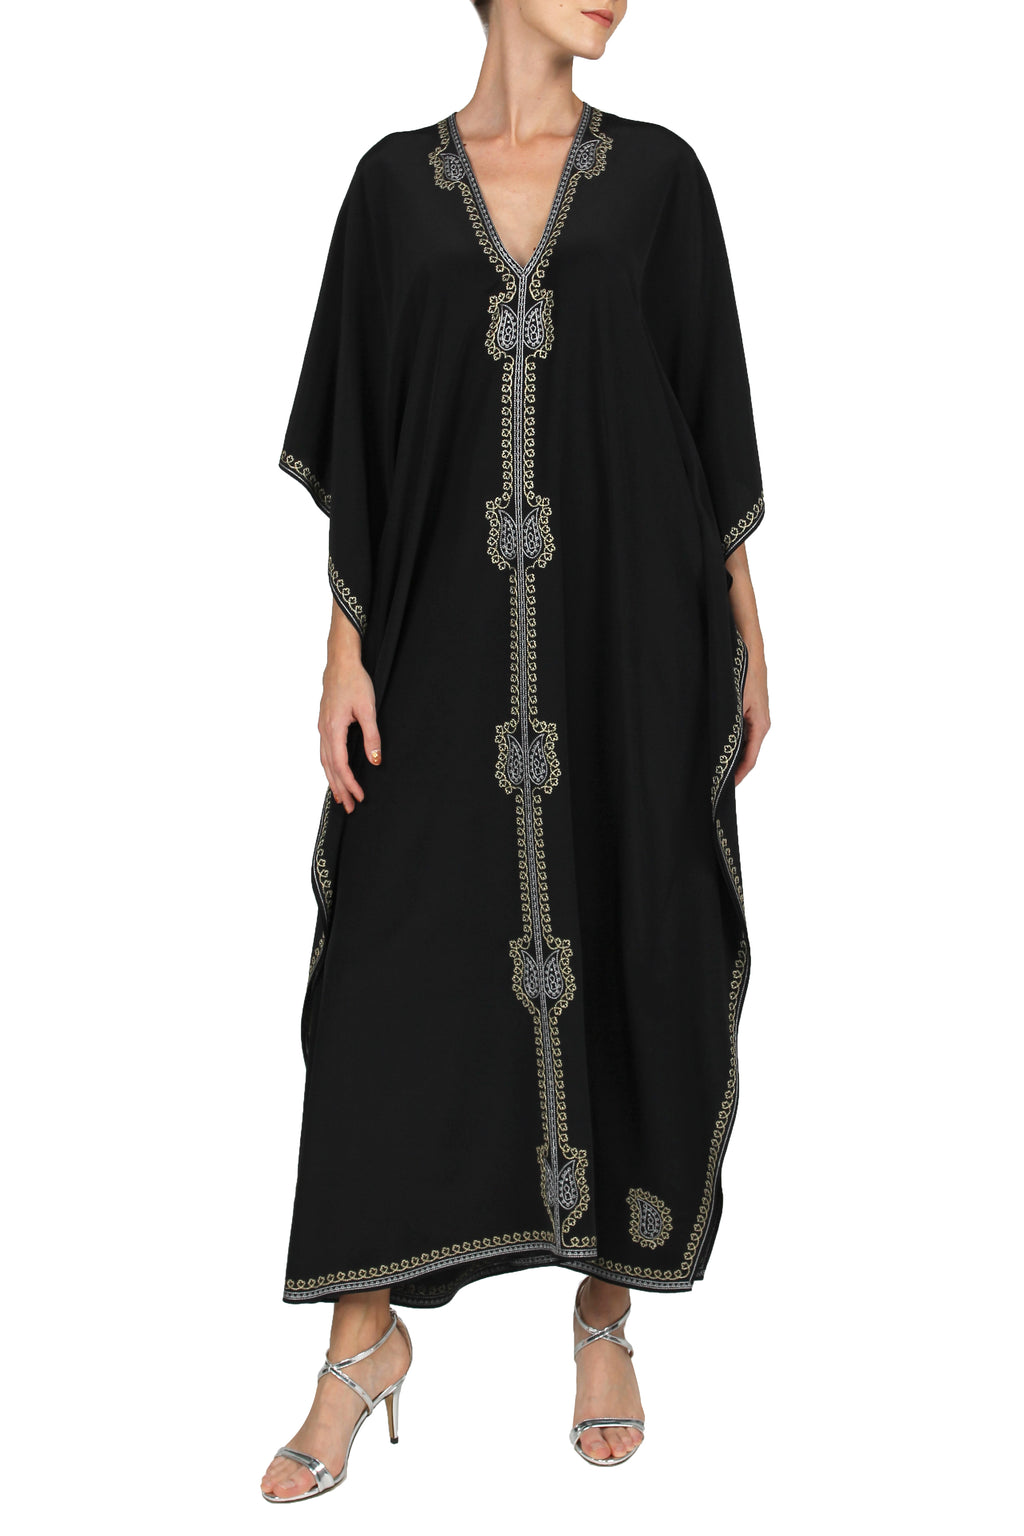 Raindrop Embroidered Boubou